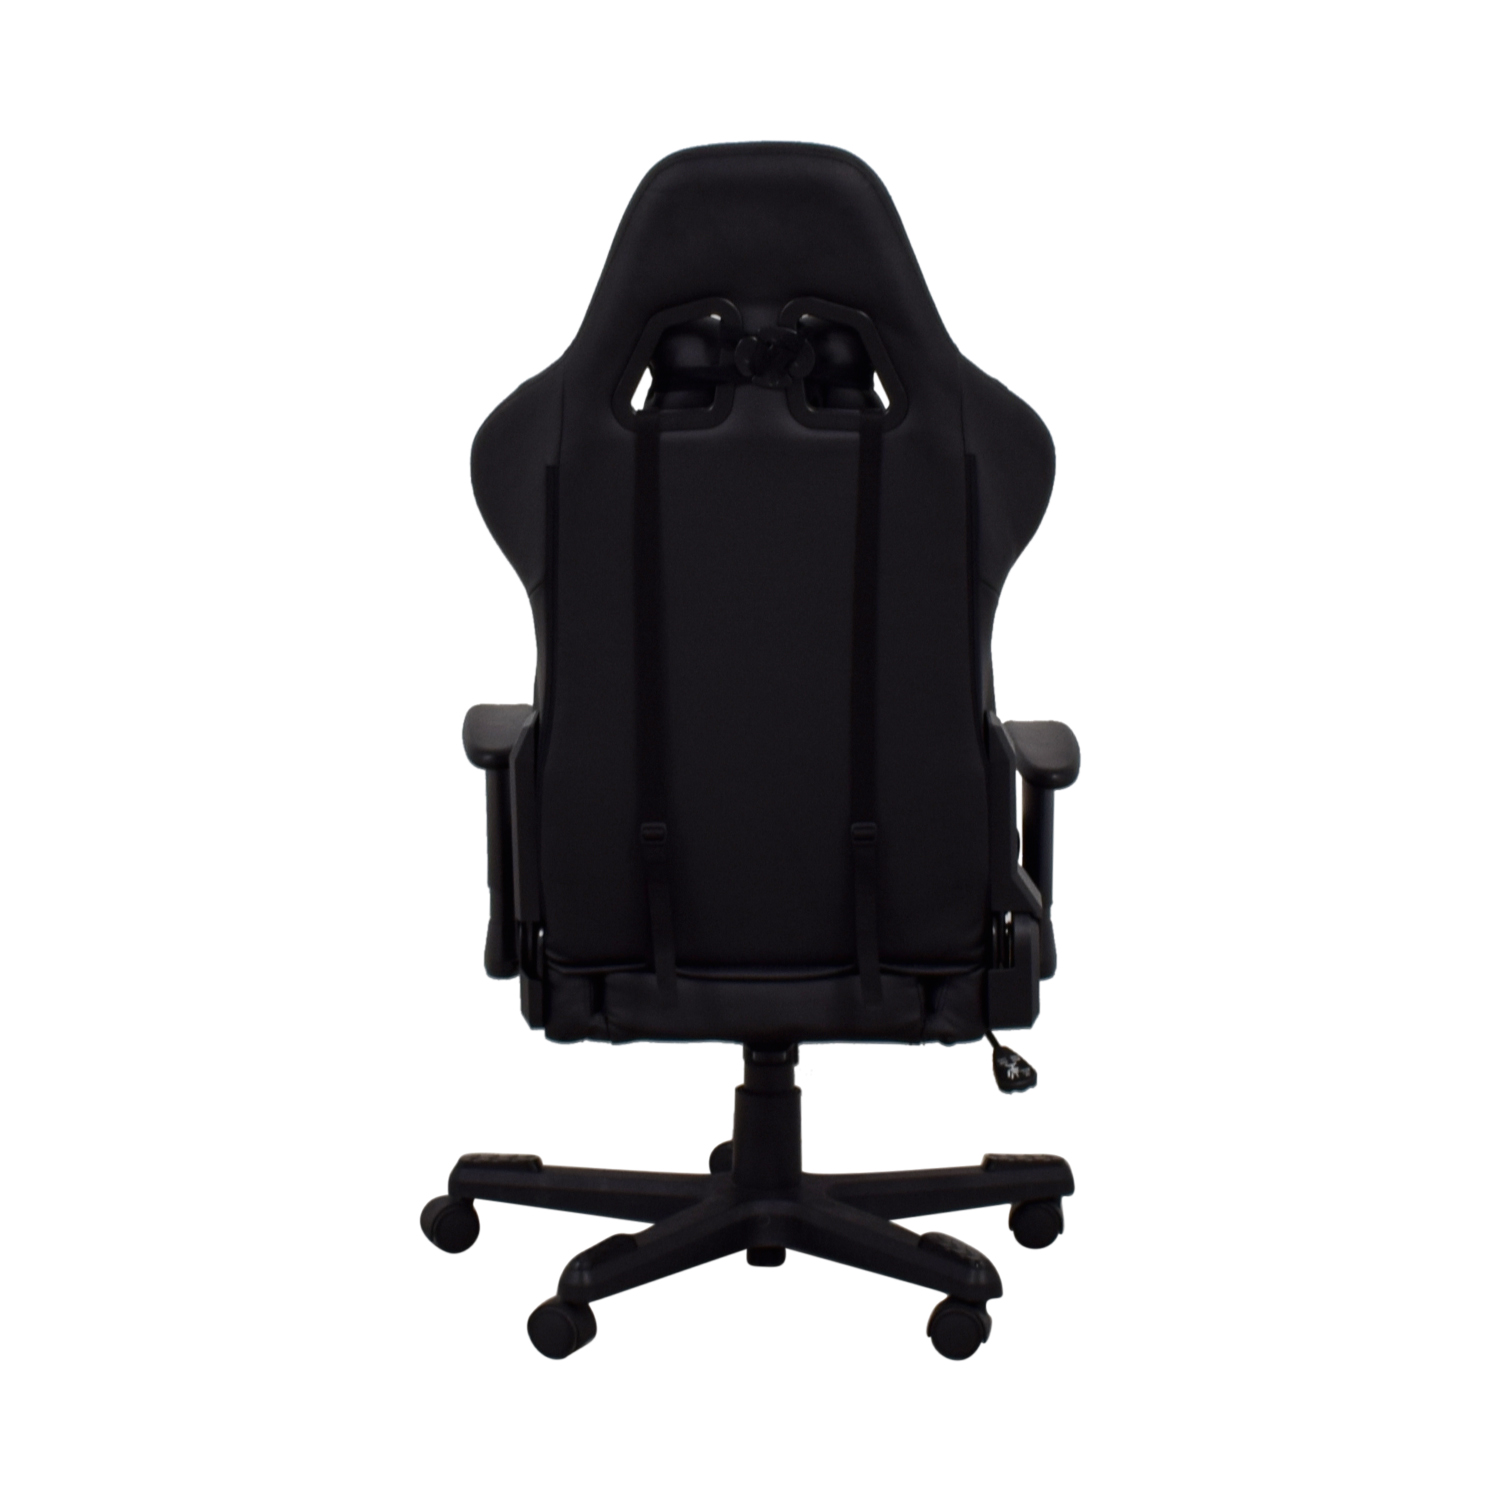 DXRacer DXRacer Formula Series Ergonomic Highback Gaming Chair with Lumbar Support